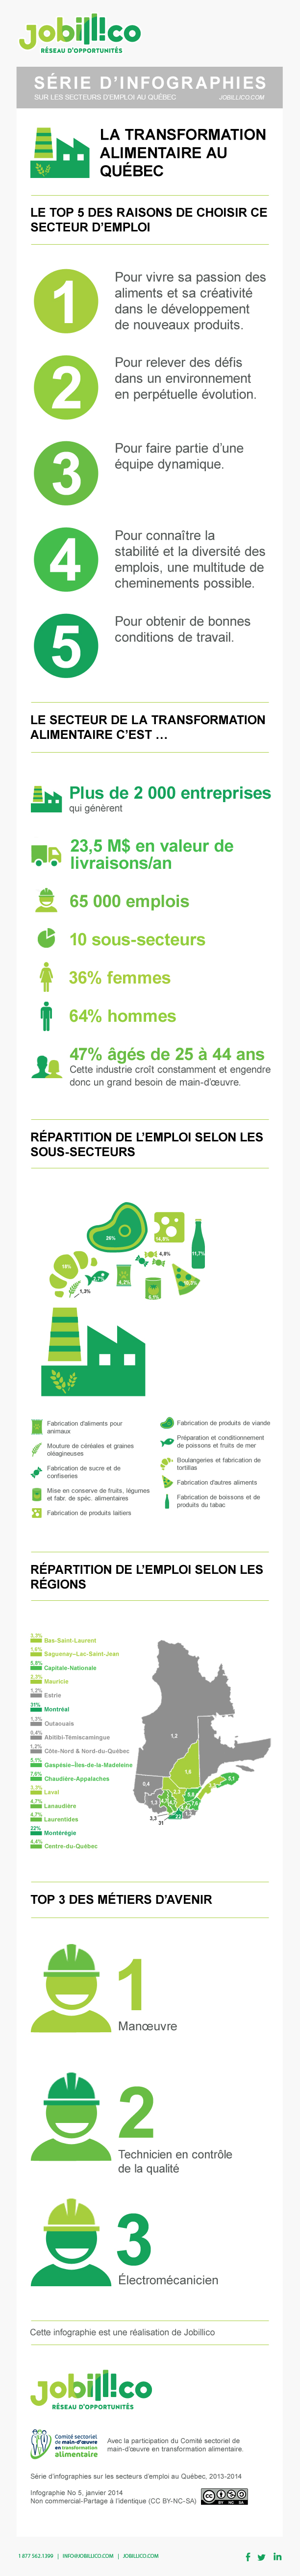 infographie-transformation-alimentaire-quebec